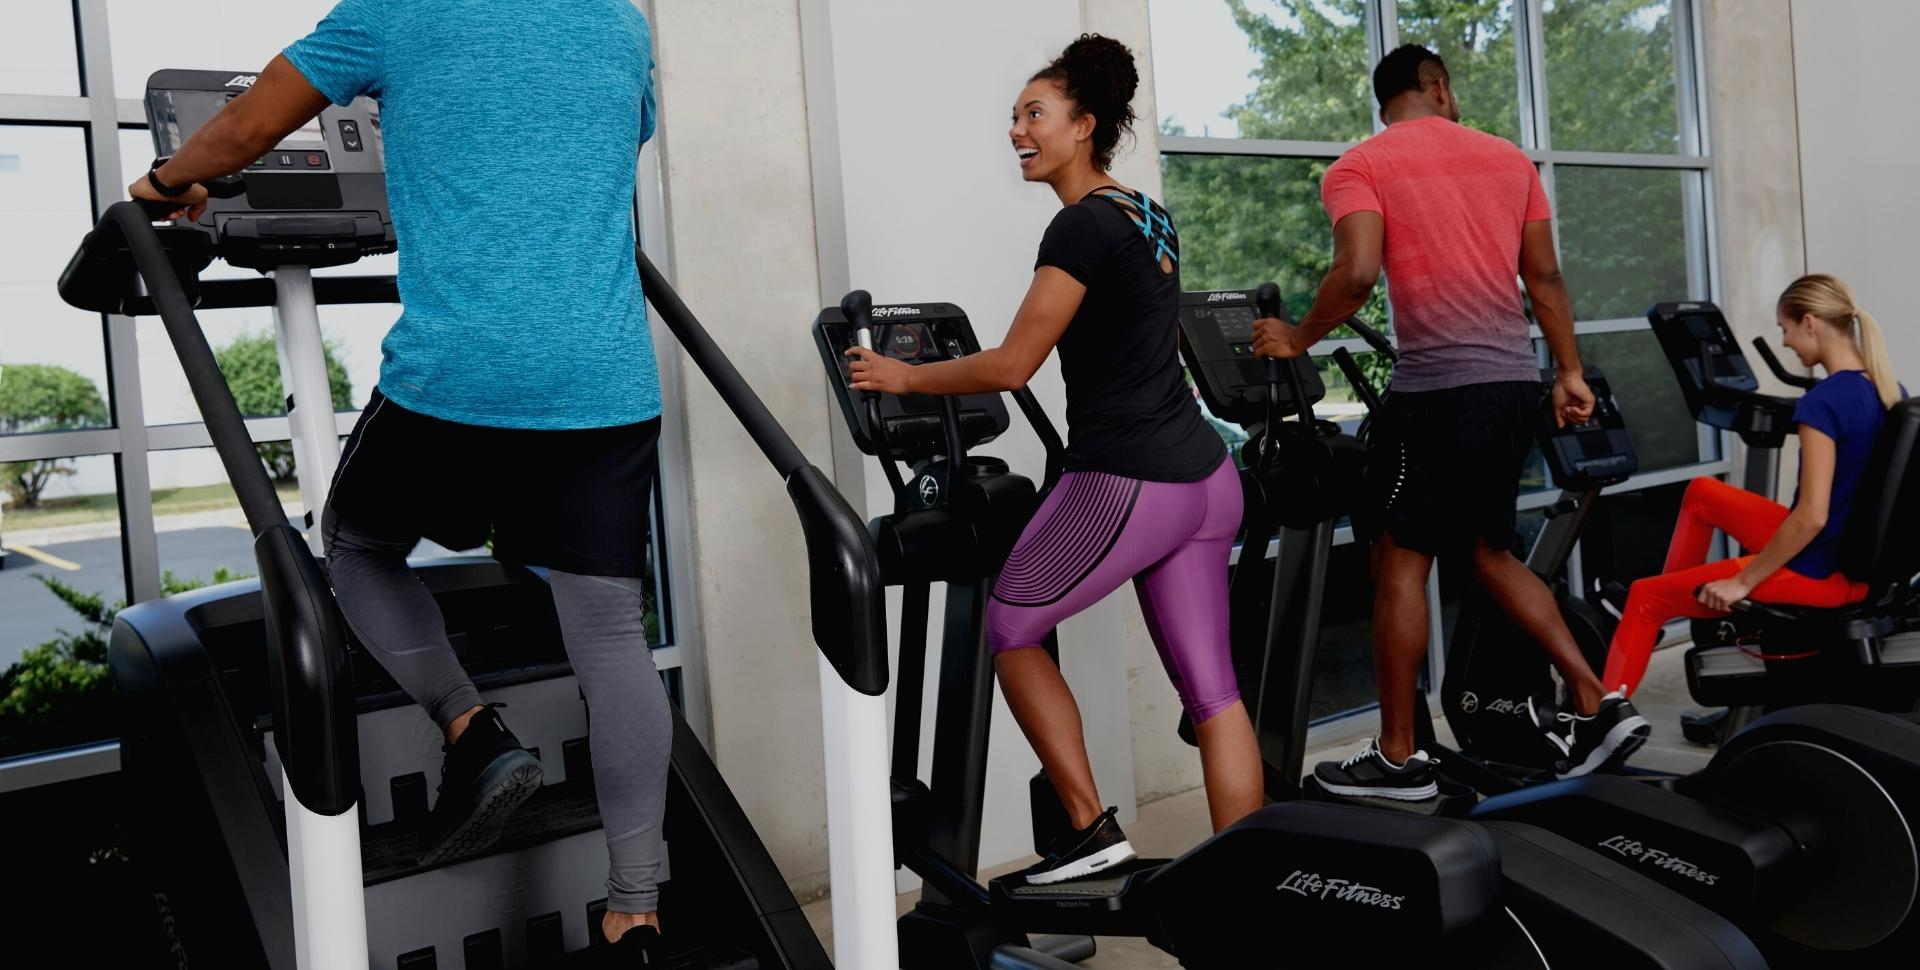 People working out on stair climbers and ellipticals at the fitness 19 midland park new jersey gym